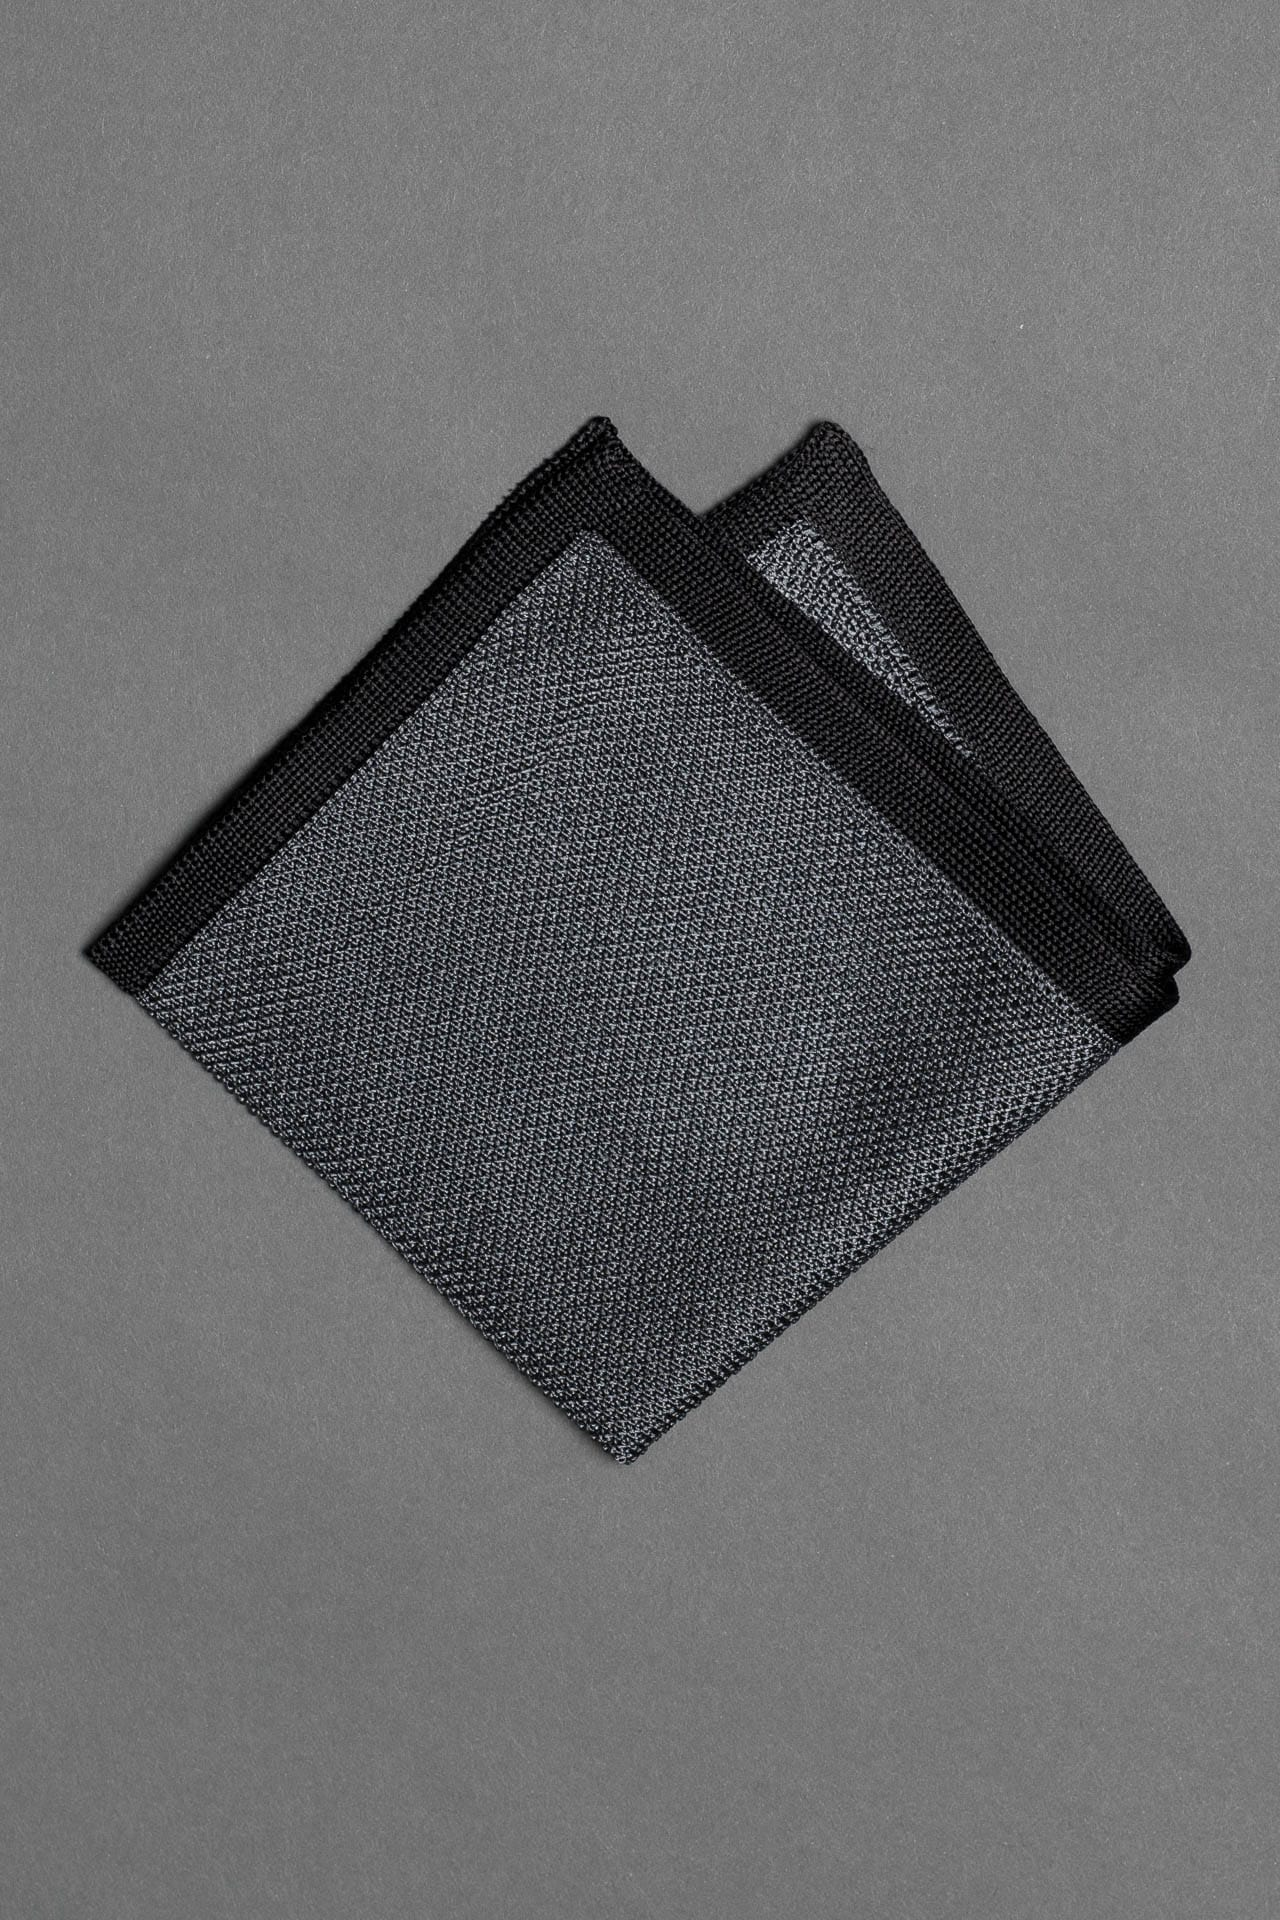 silk-knitted-pocket-square-gray-with-black-frame-made-in-italy